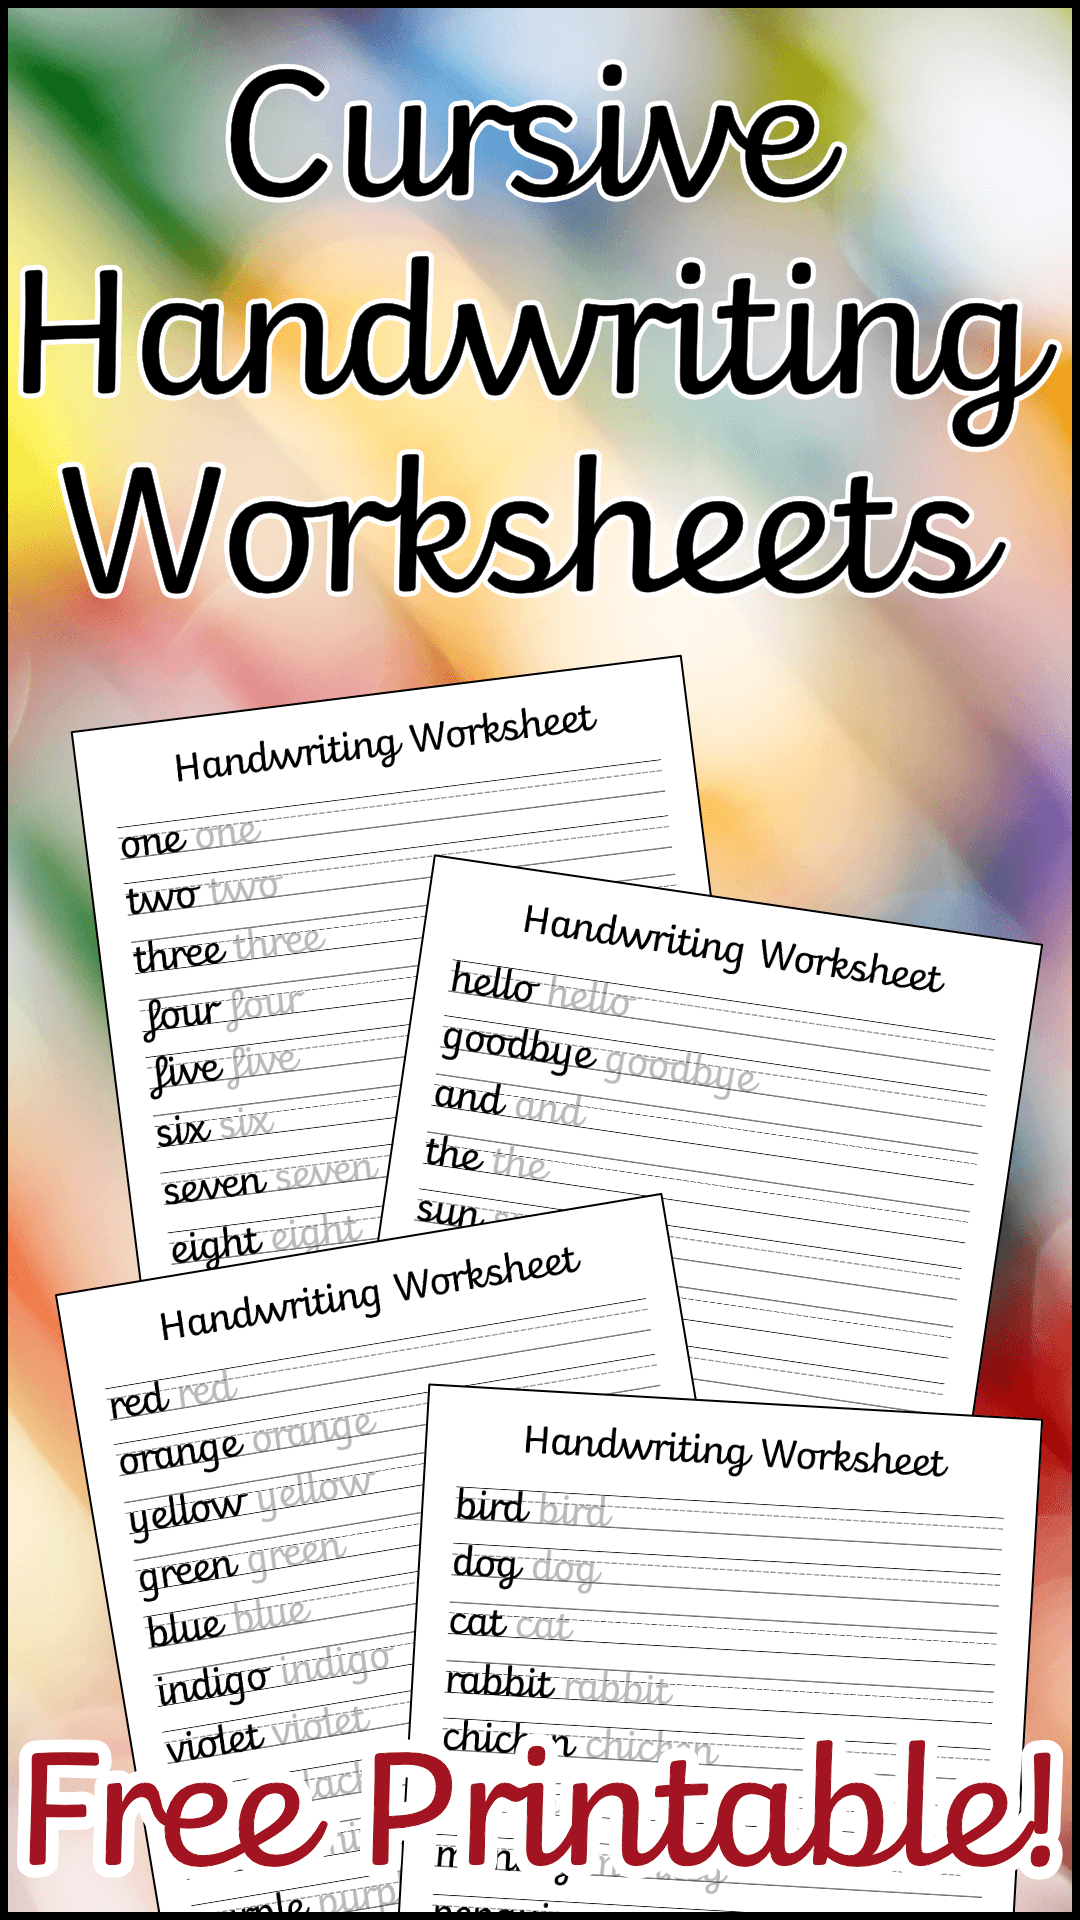 Cursive Handwriting Worksheets Free Printable With